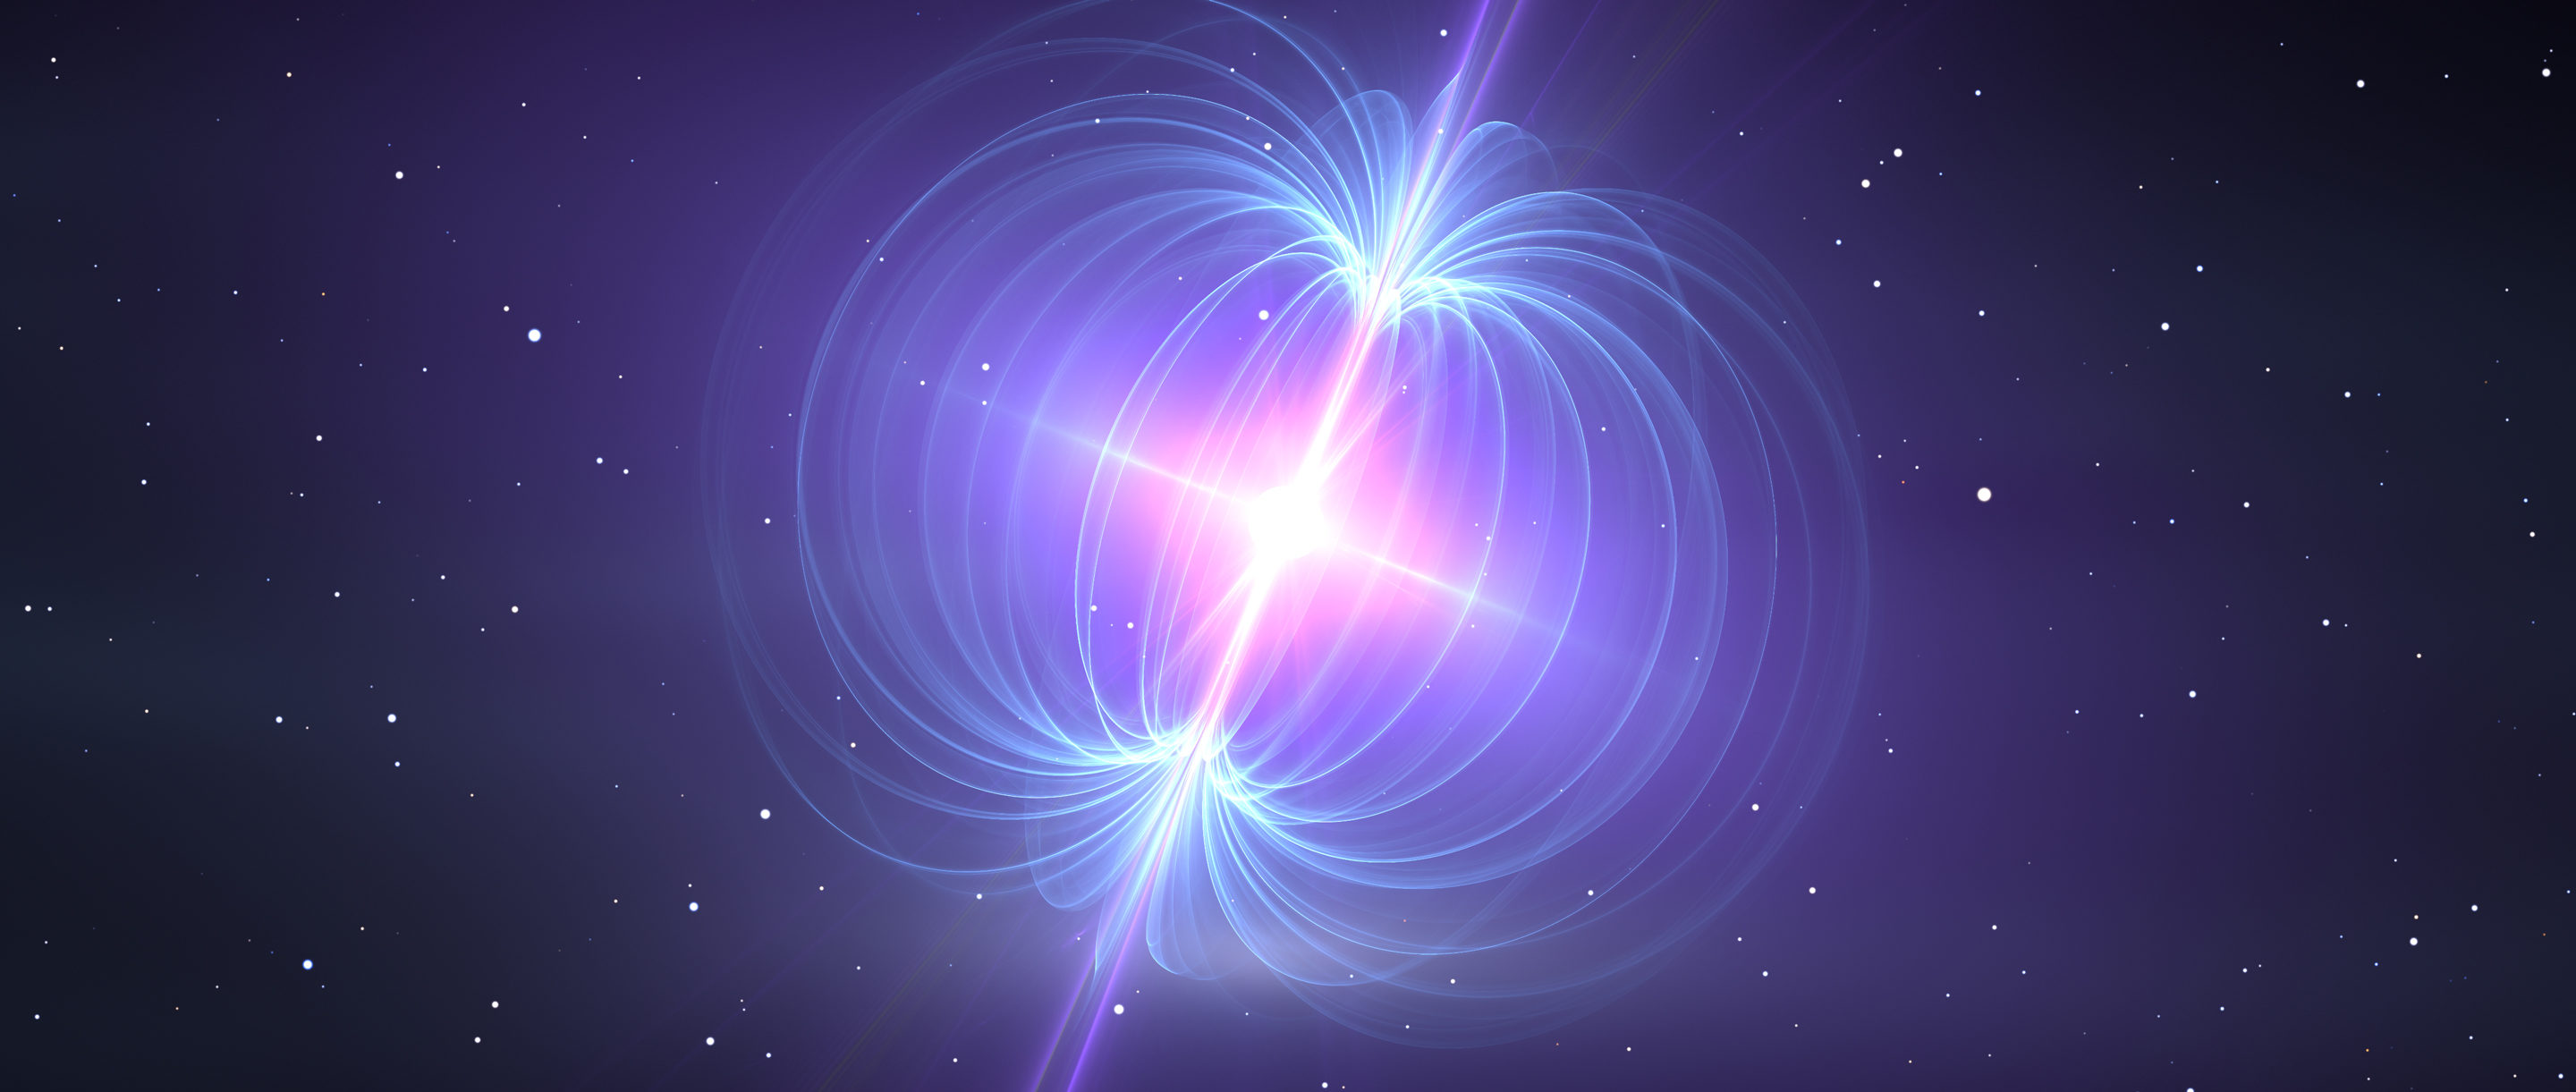 Illustration of a magnetar with blue magnetic field lines.